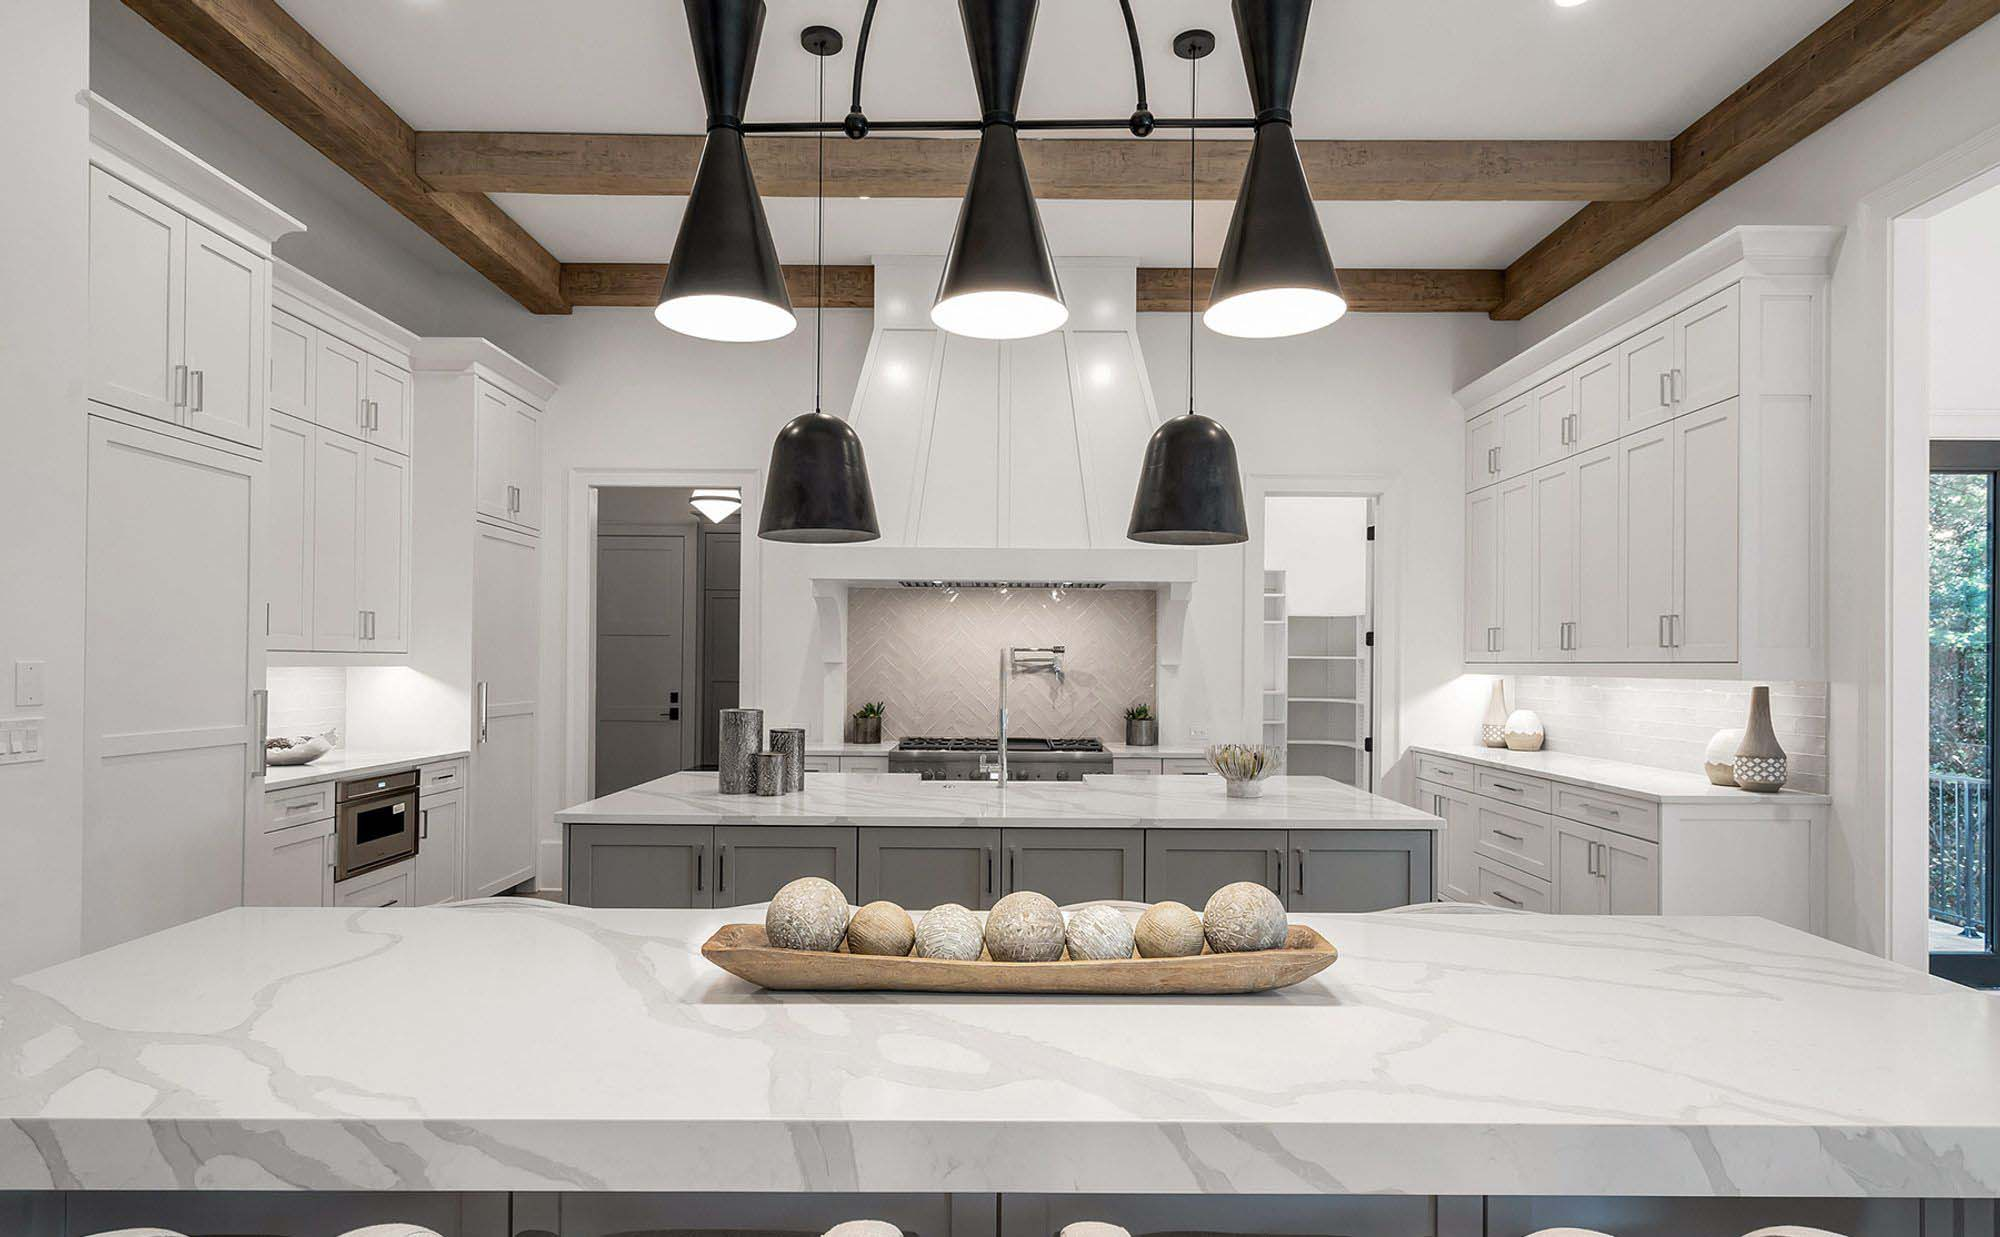 Wood Beam Kitchen Ceiling Exposed Beams In The Kitchen